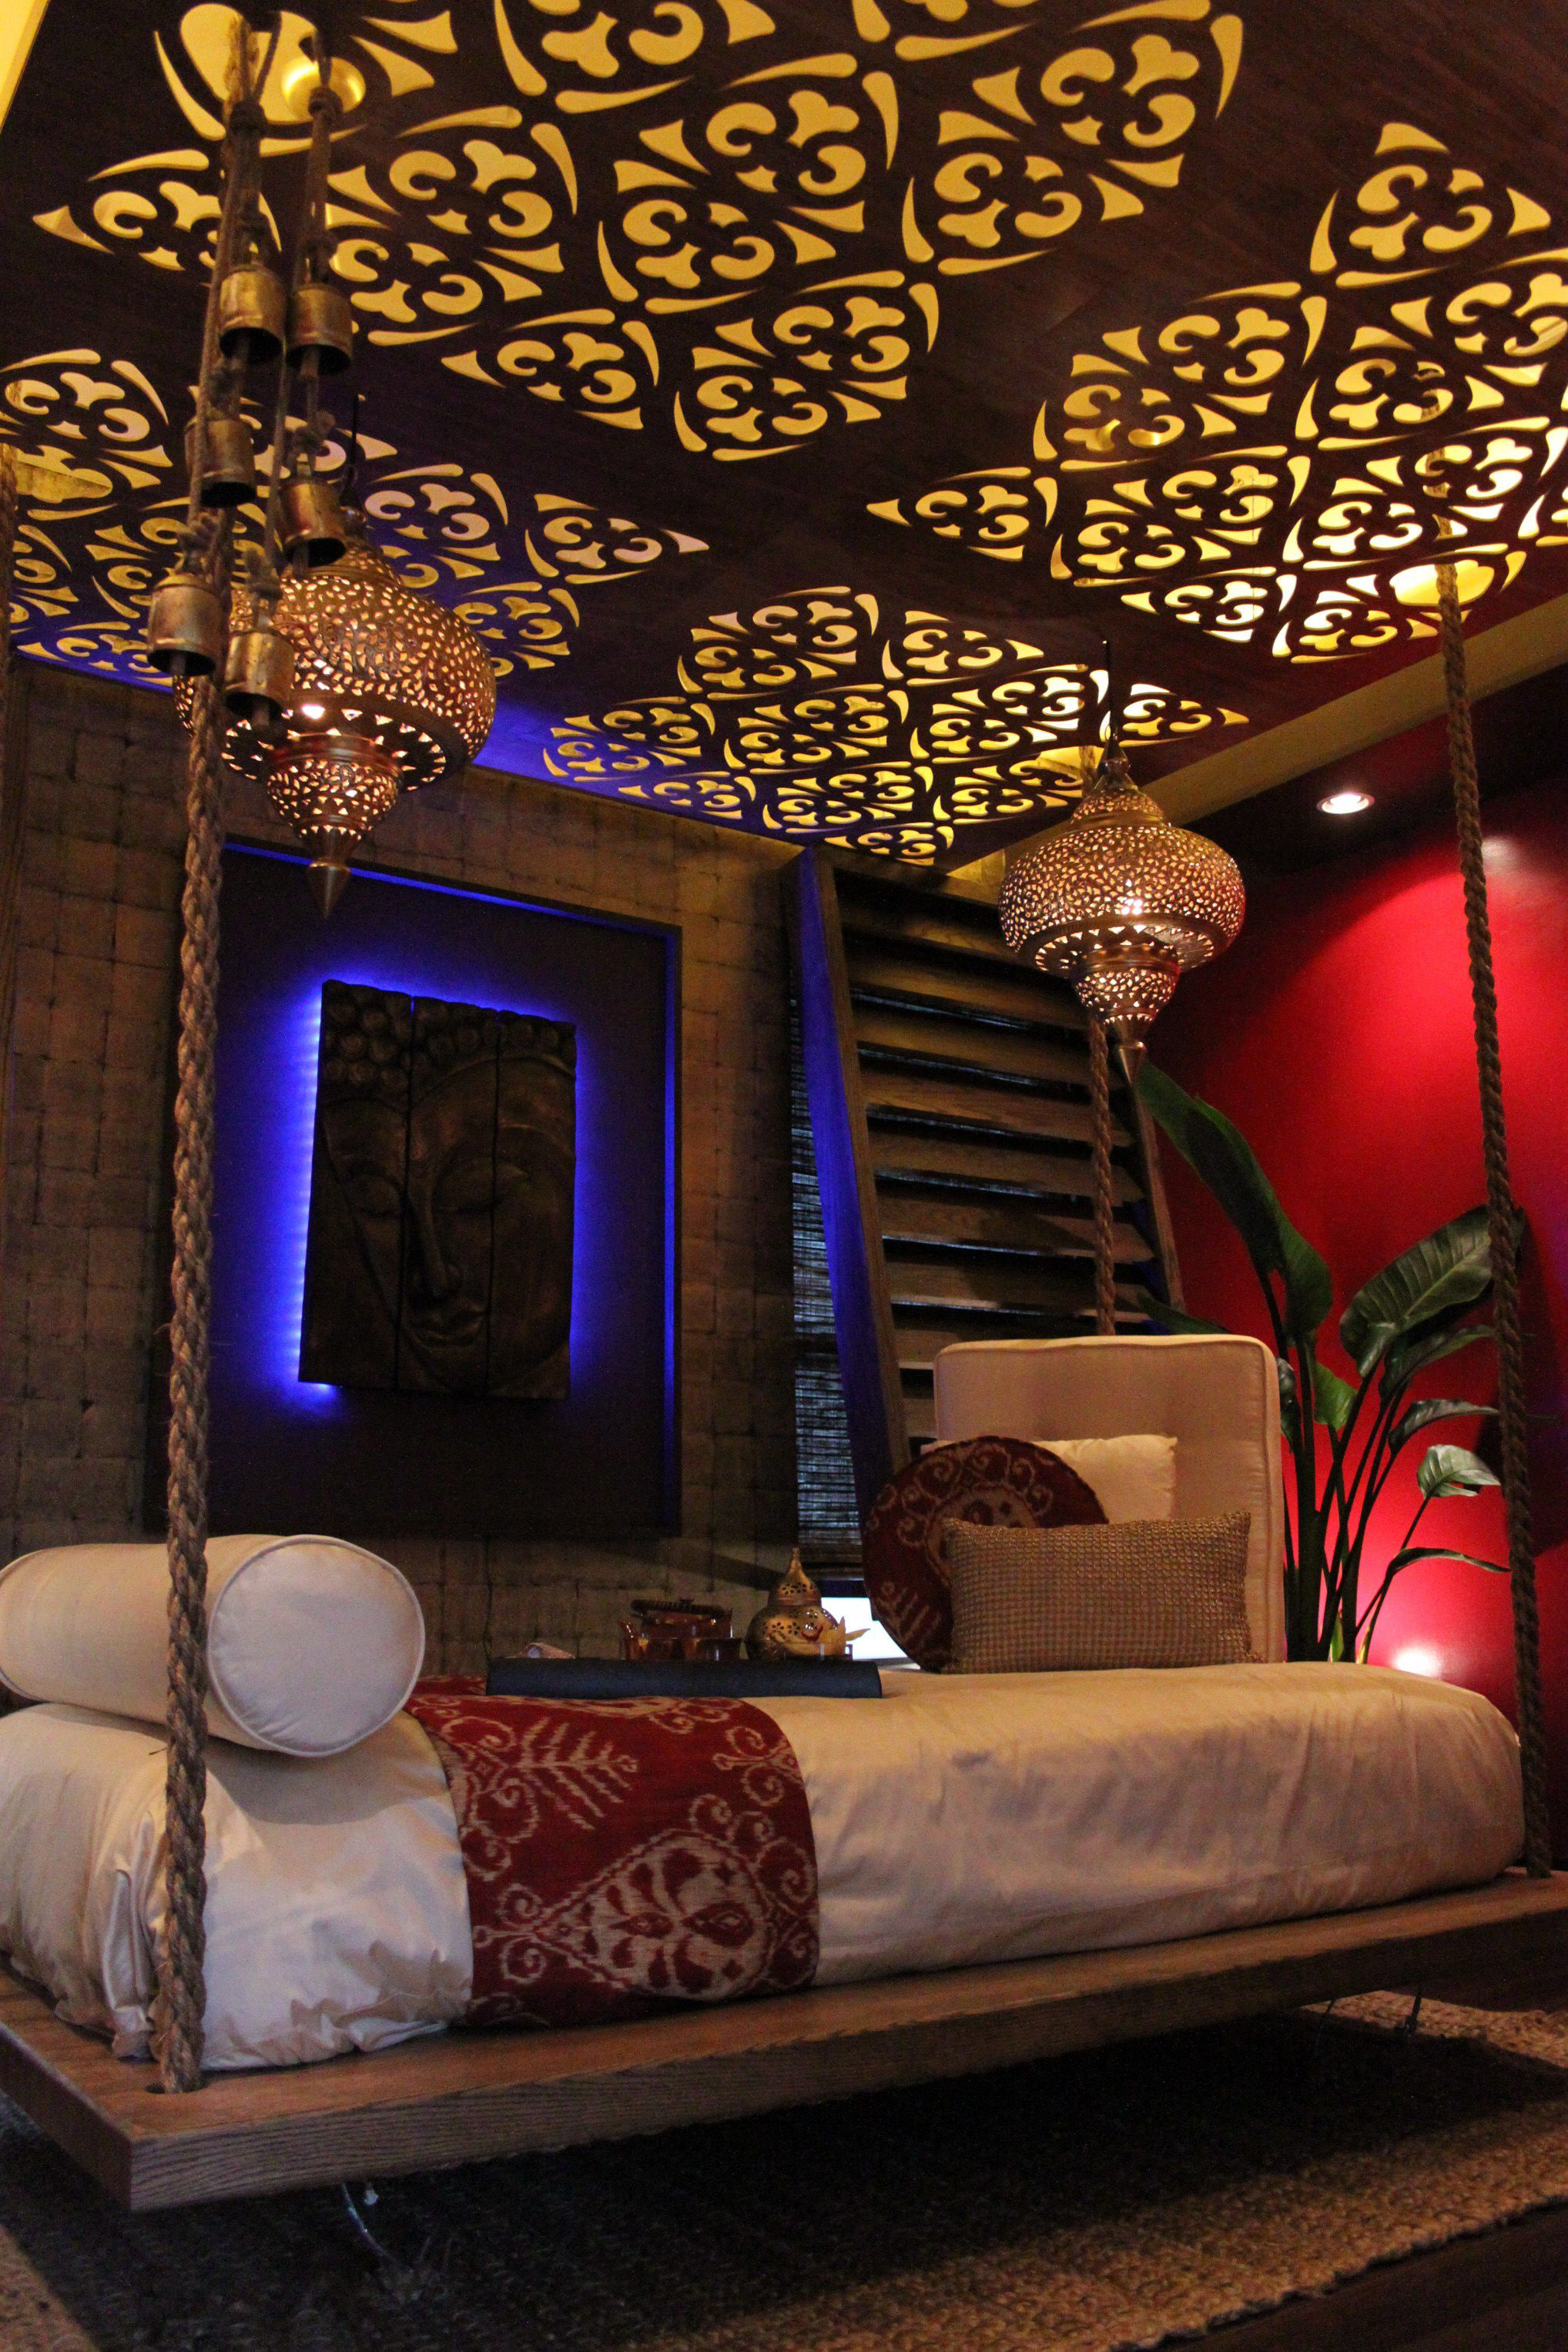 Exotic moroccan bedroom decorating light and deep purple colors - A Parasoleil Ceiling With A Moroccan Feel